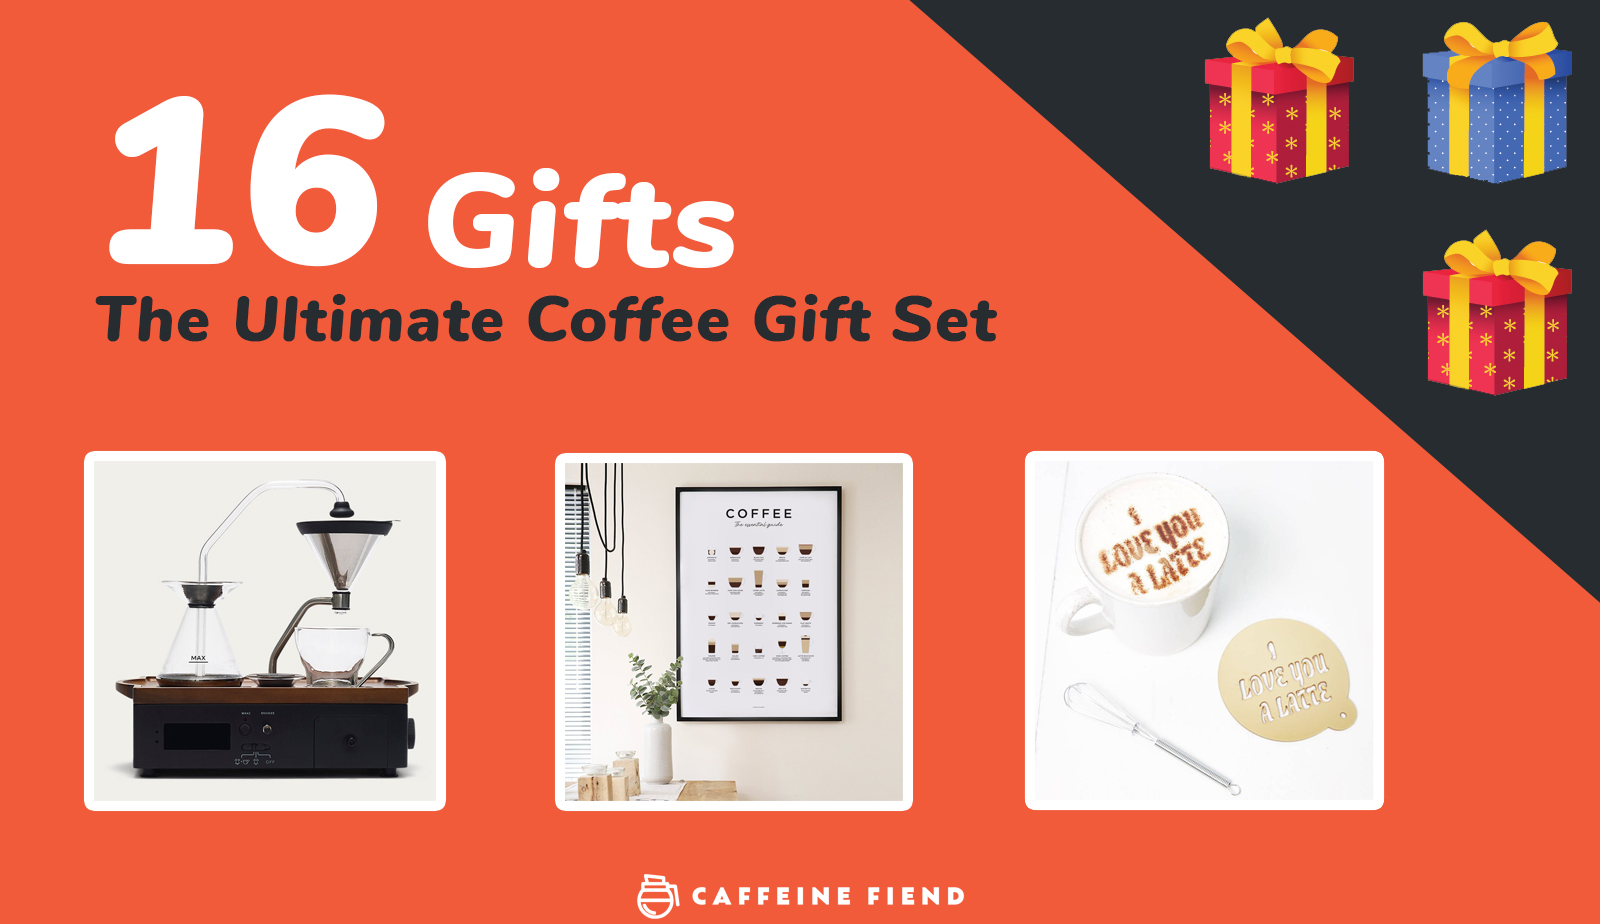 The Ultimate coffee gift set - 16 coffee gifts